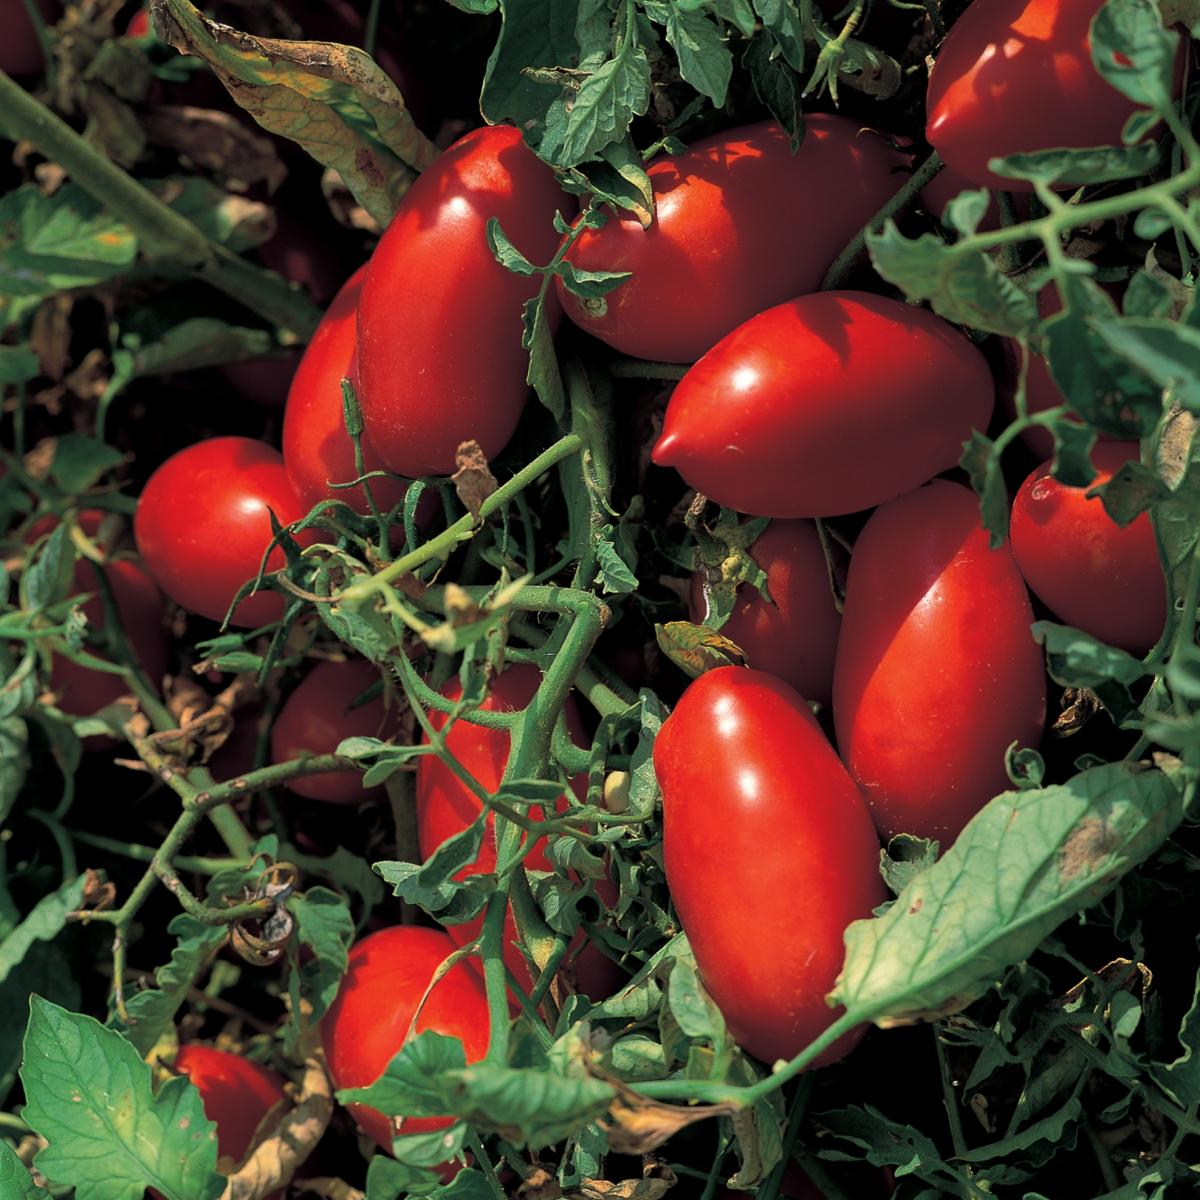 A picture of Delia's Tomato and Olive Vinaigrette recipe